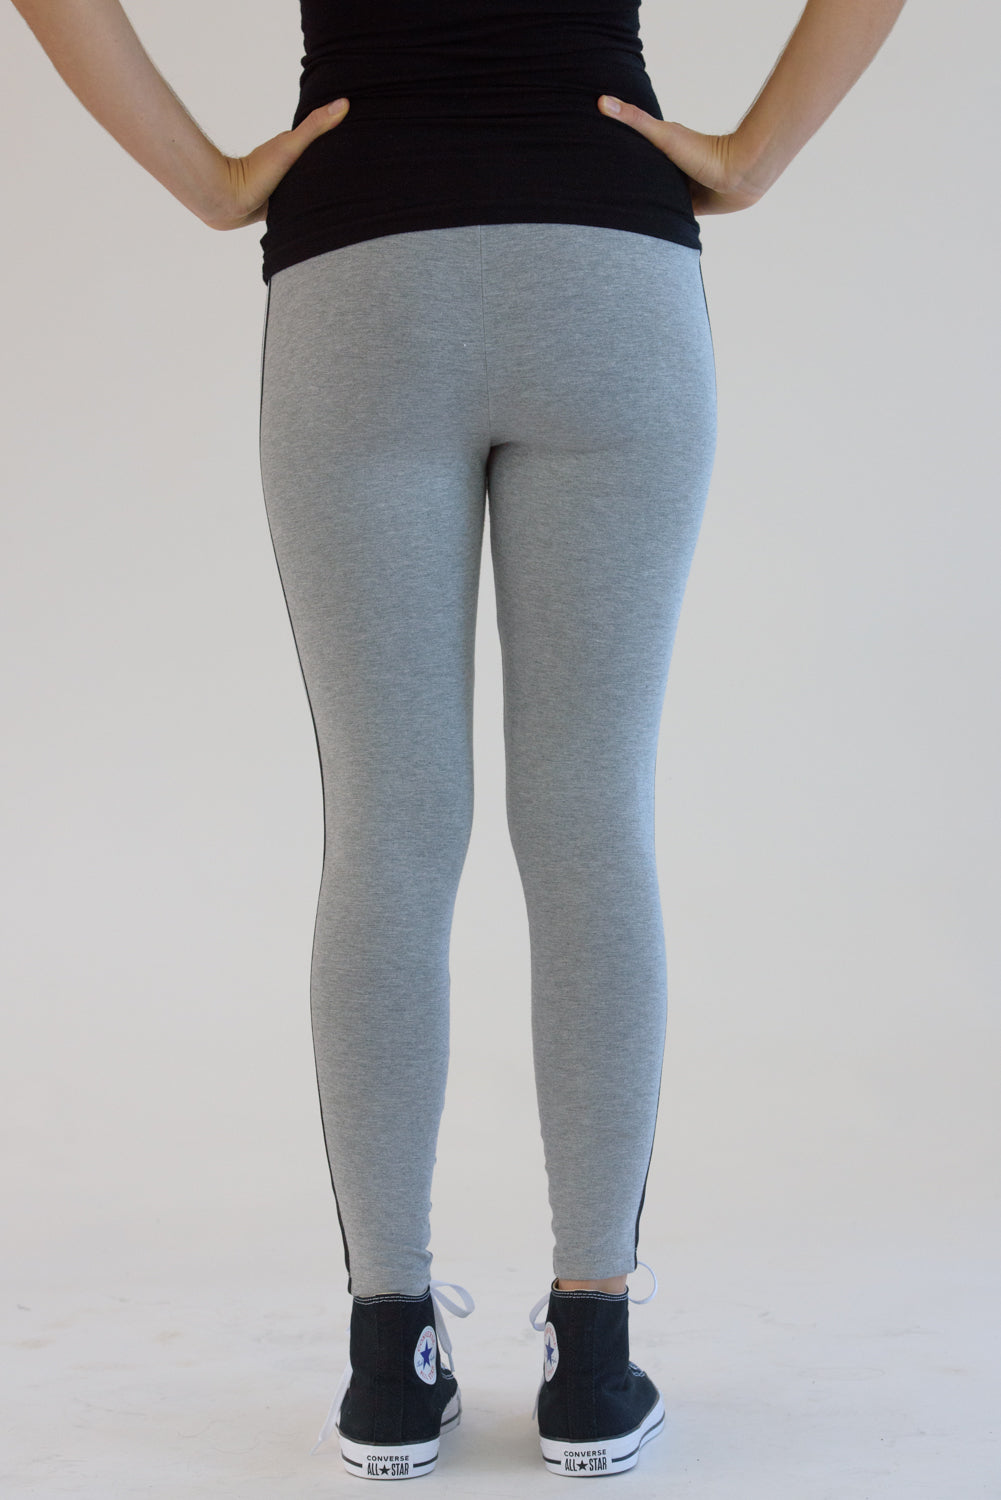 Heather Grey Leggings w/ Black and White Taping